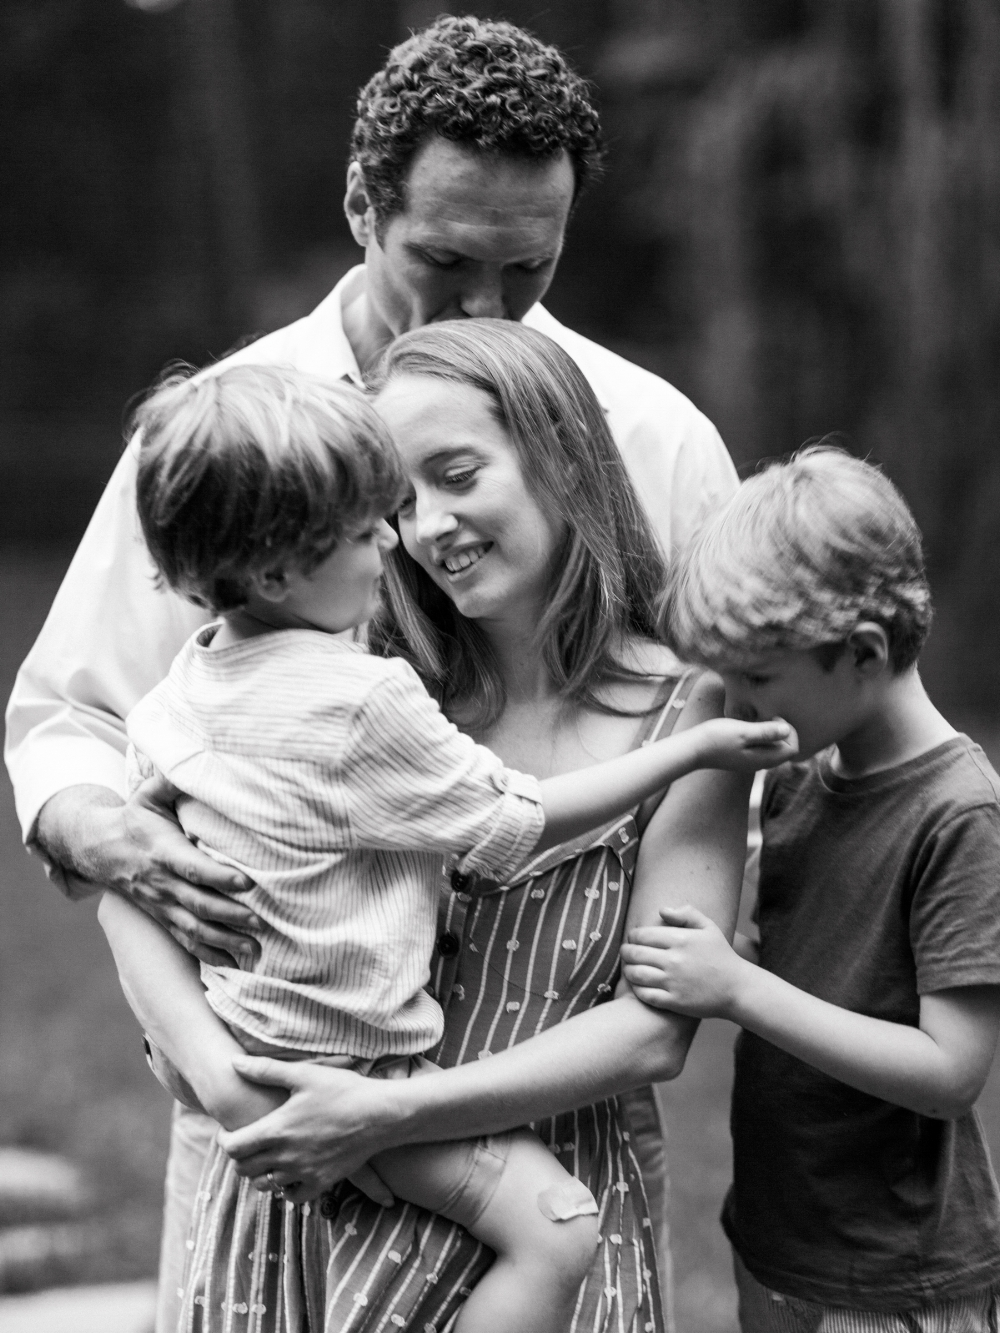 a candid moment of parents and children captured on film by photographer anna laero at a pittsburgh family session